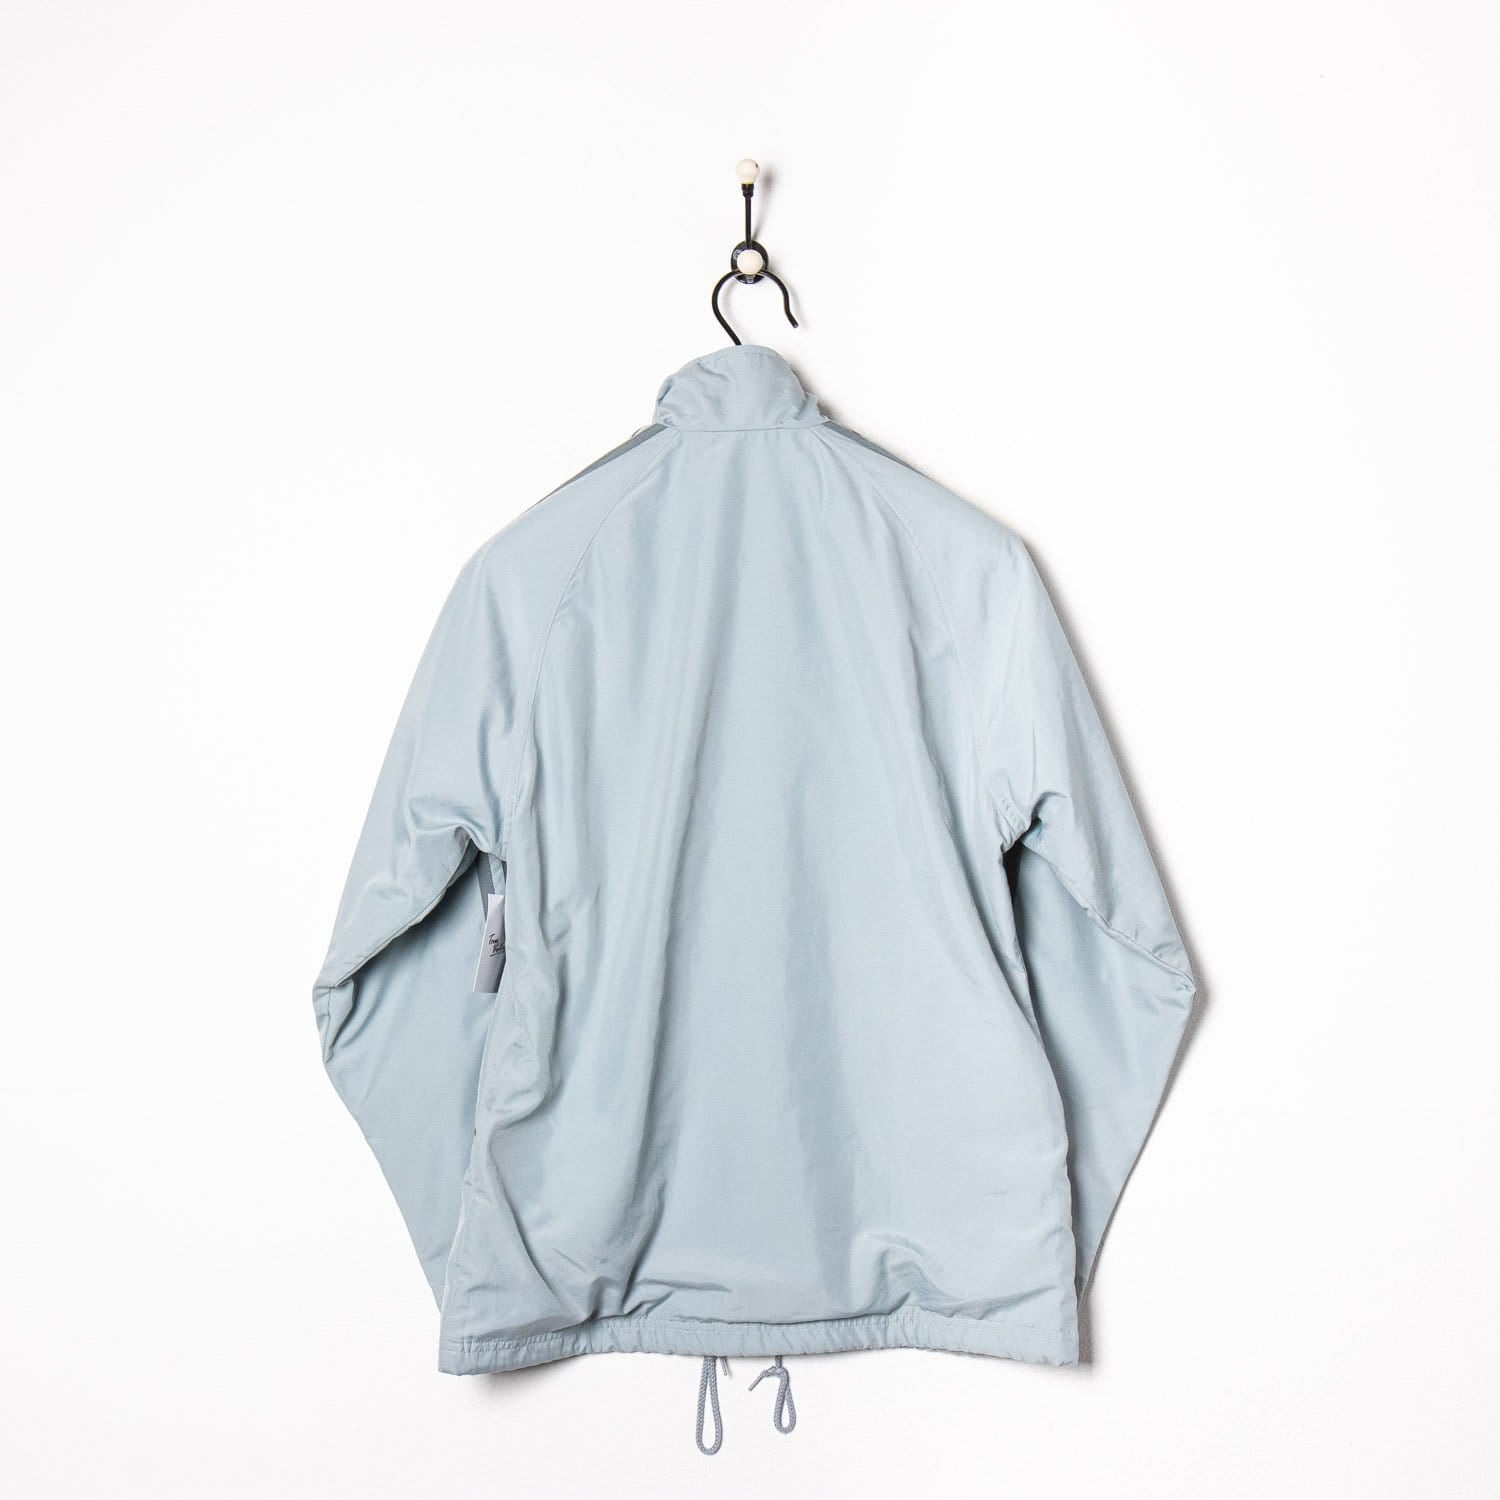 Tommy Hilfiger Polo Shirt White XL